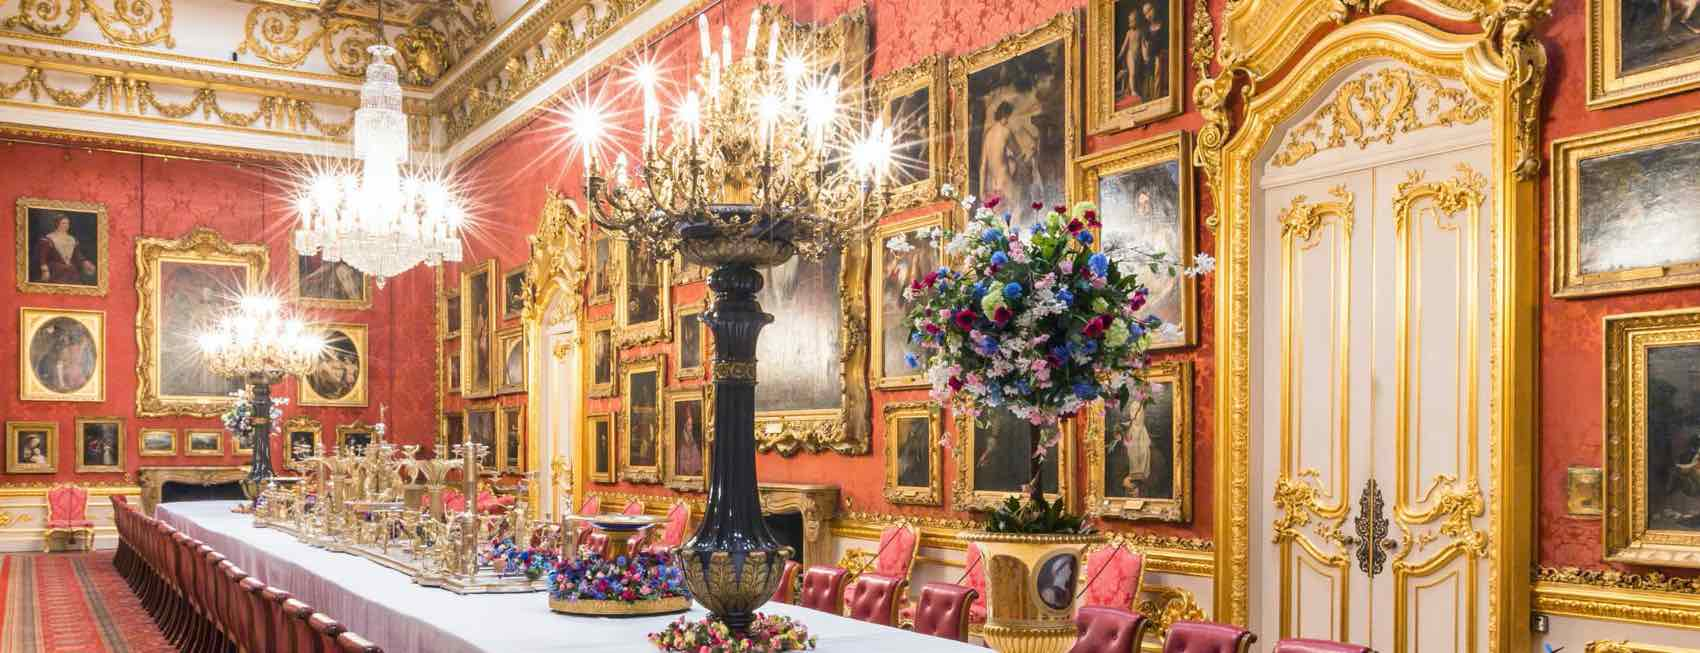 The art collection raised Apsley House from an aristocratic town house to palatial status